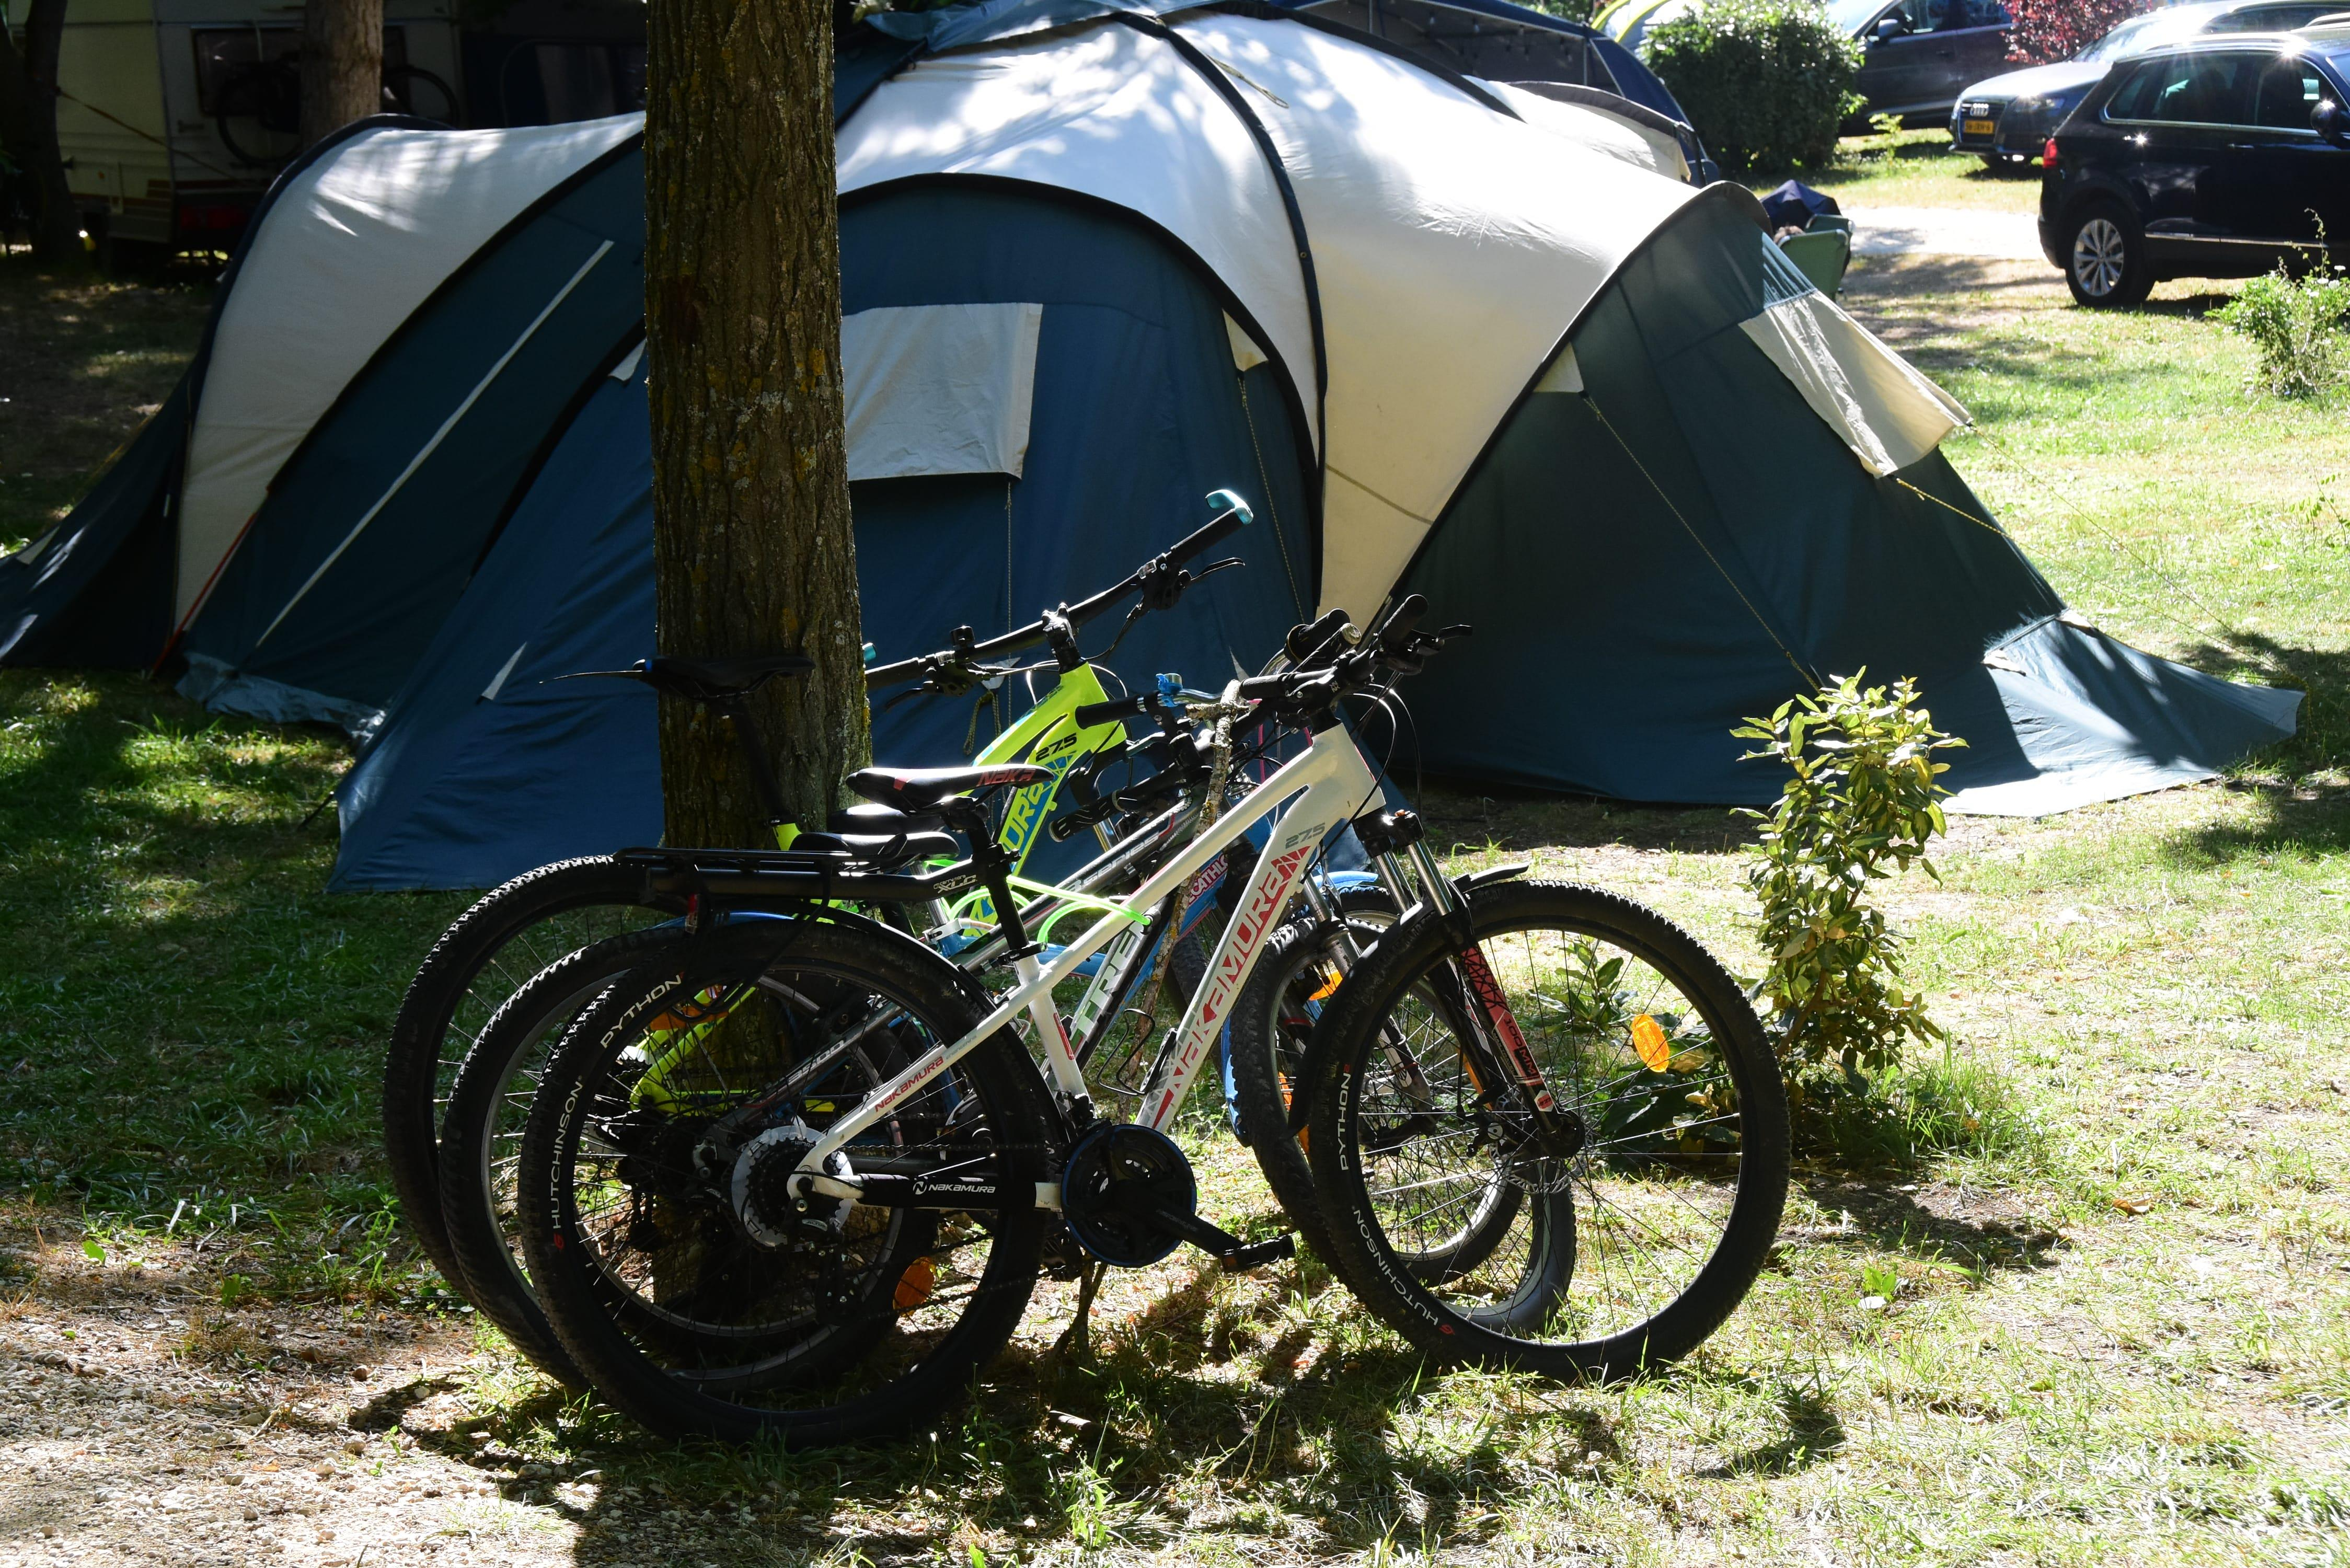 Standplaats - Campingplaats Met Elektriciteit - Sites et Paysages La Source du Jabron